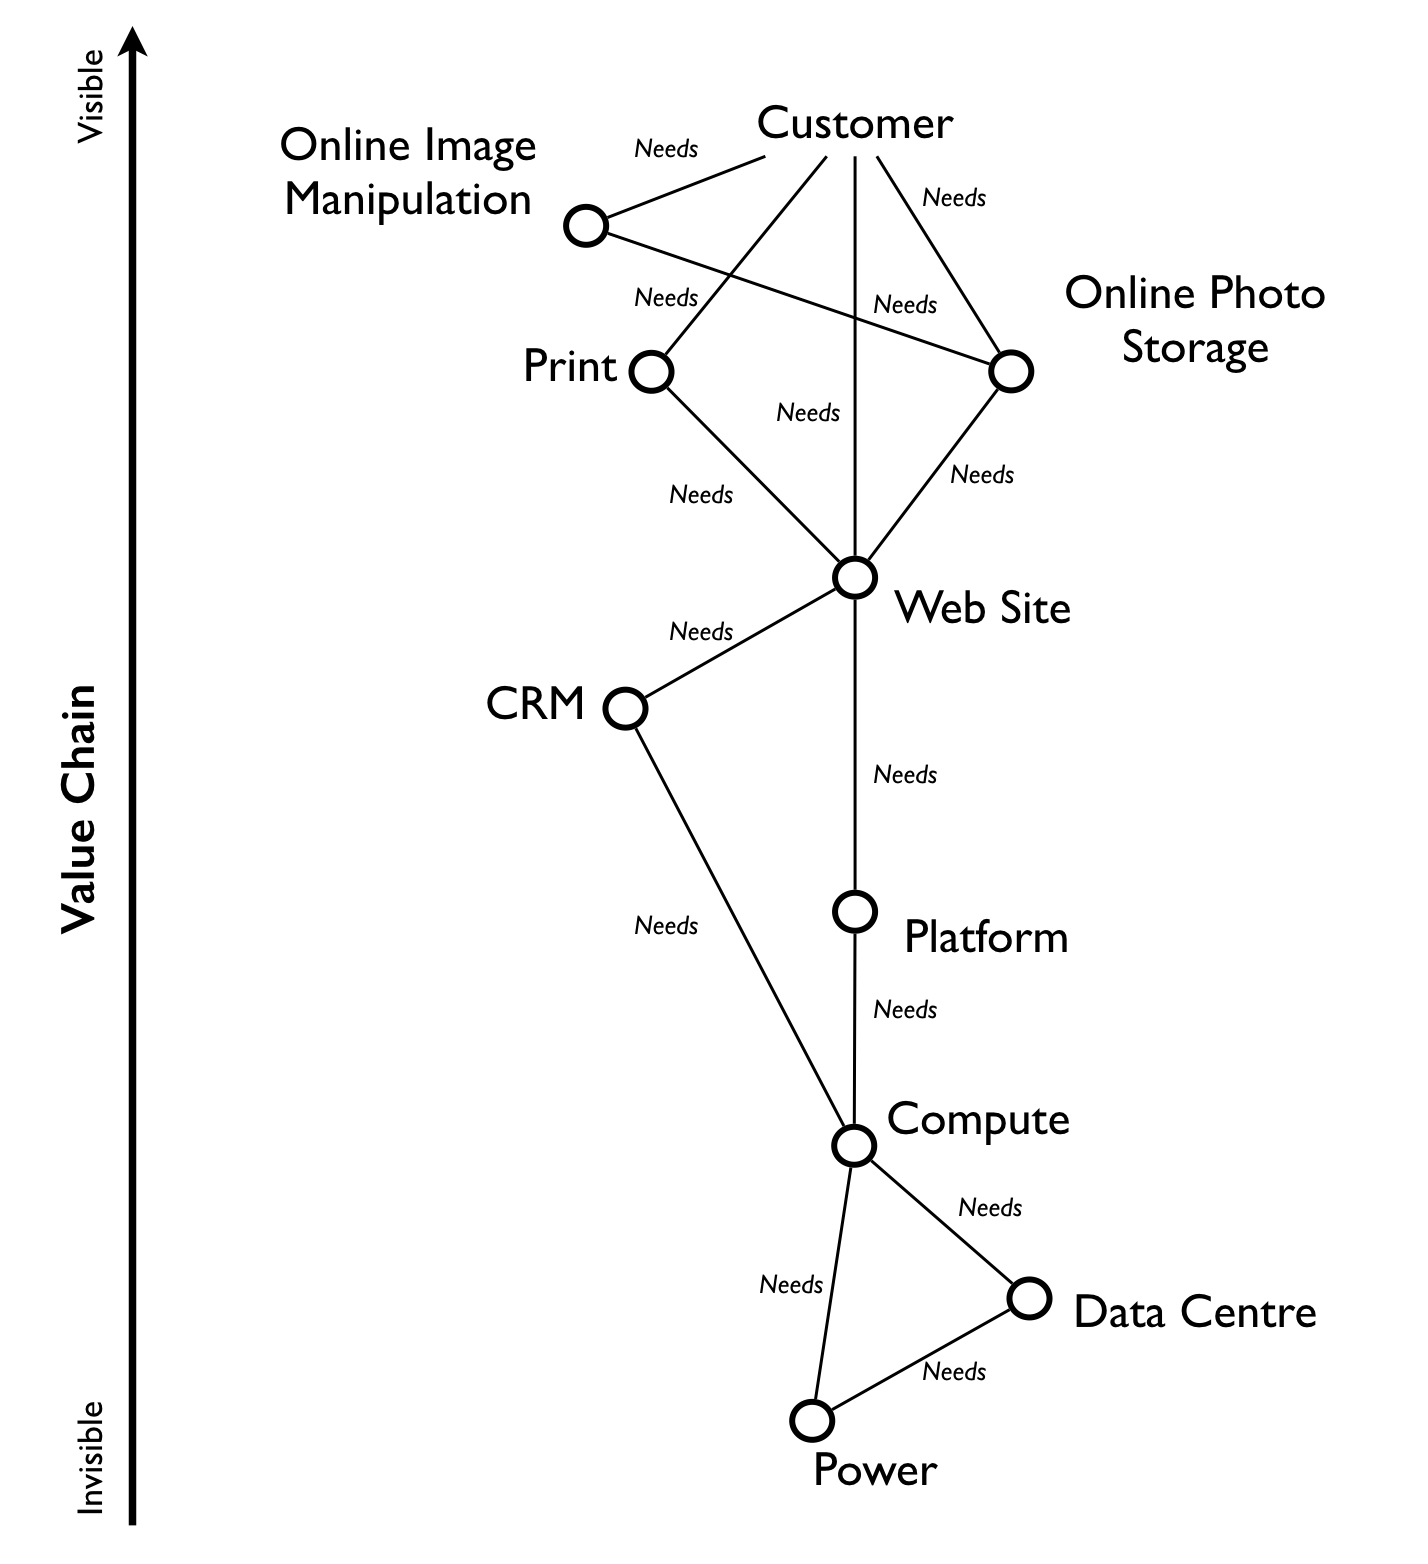 Bits Or Pieces Finding A Path Block Diagram Manipulation To Reiterate Things Near The Top Are More Visible And Have Value User For Example Online Image Was Placed Slightly Higher Than